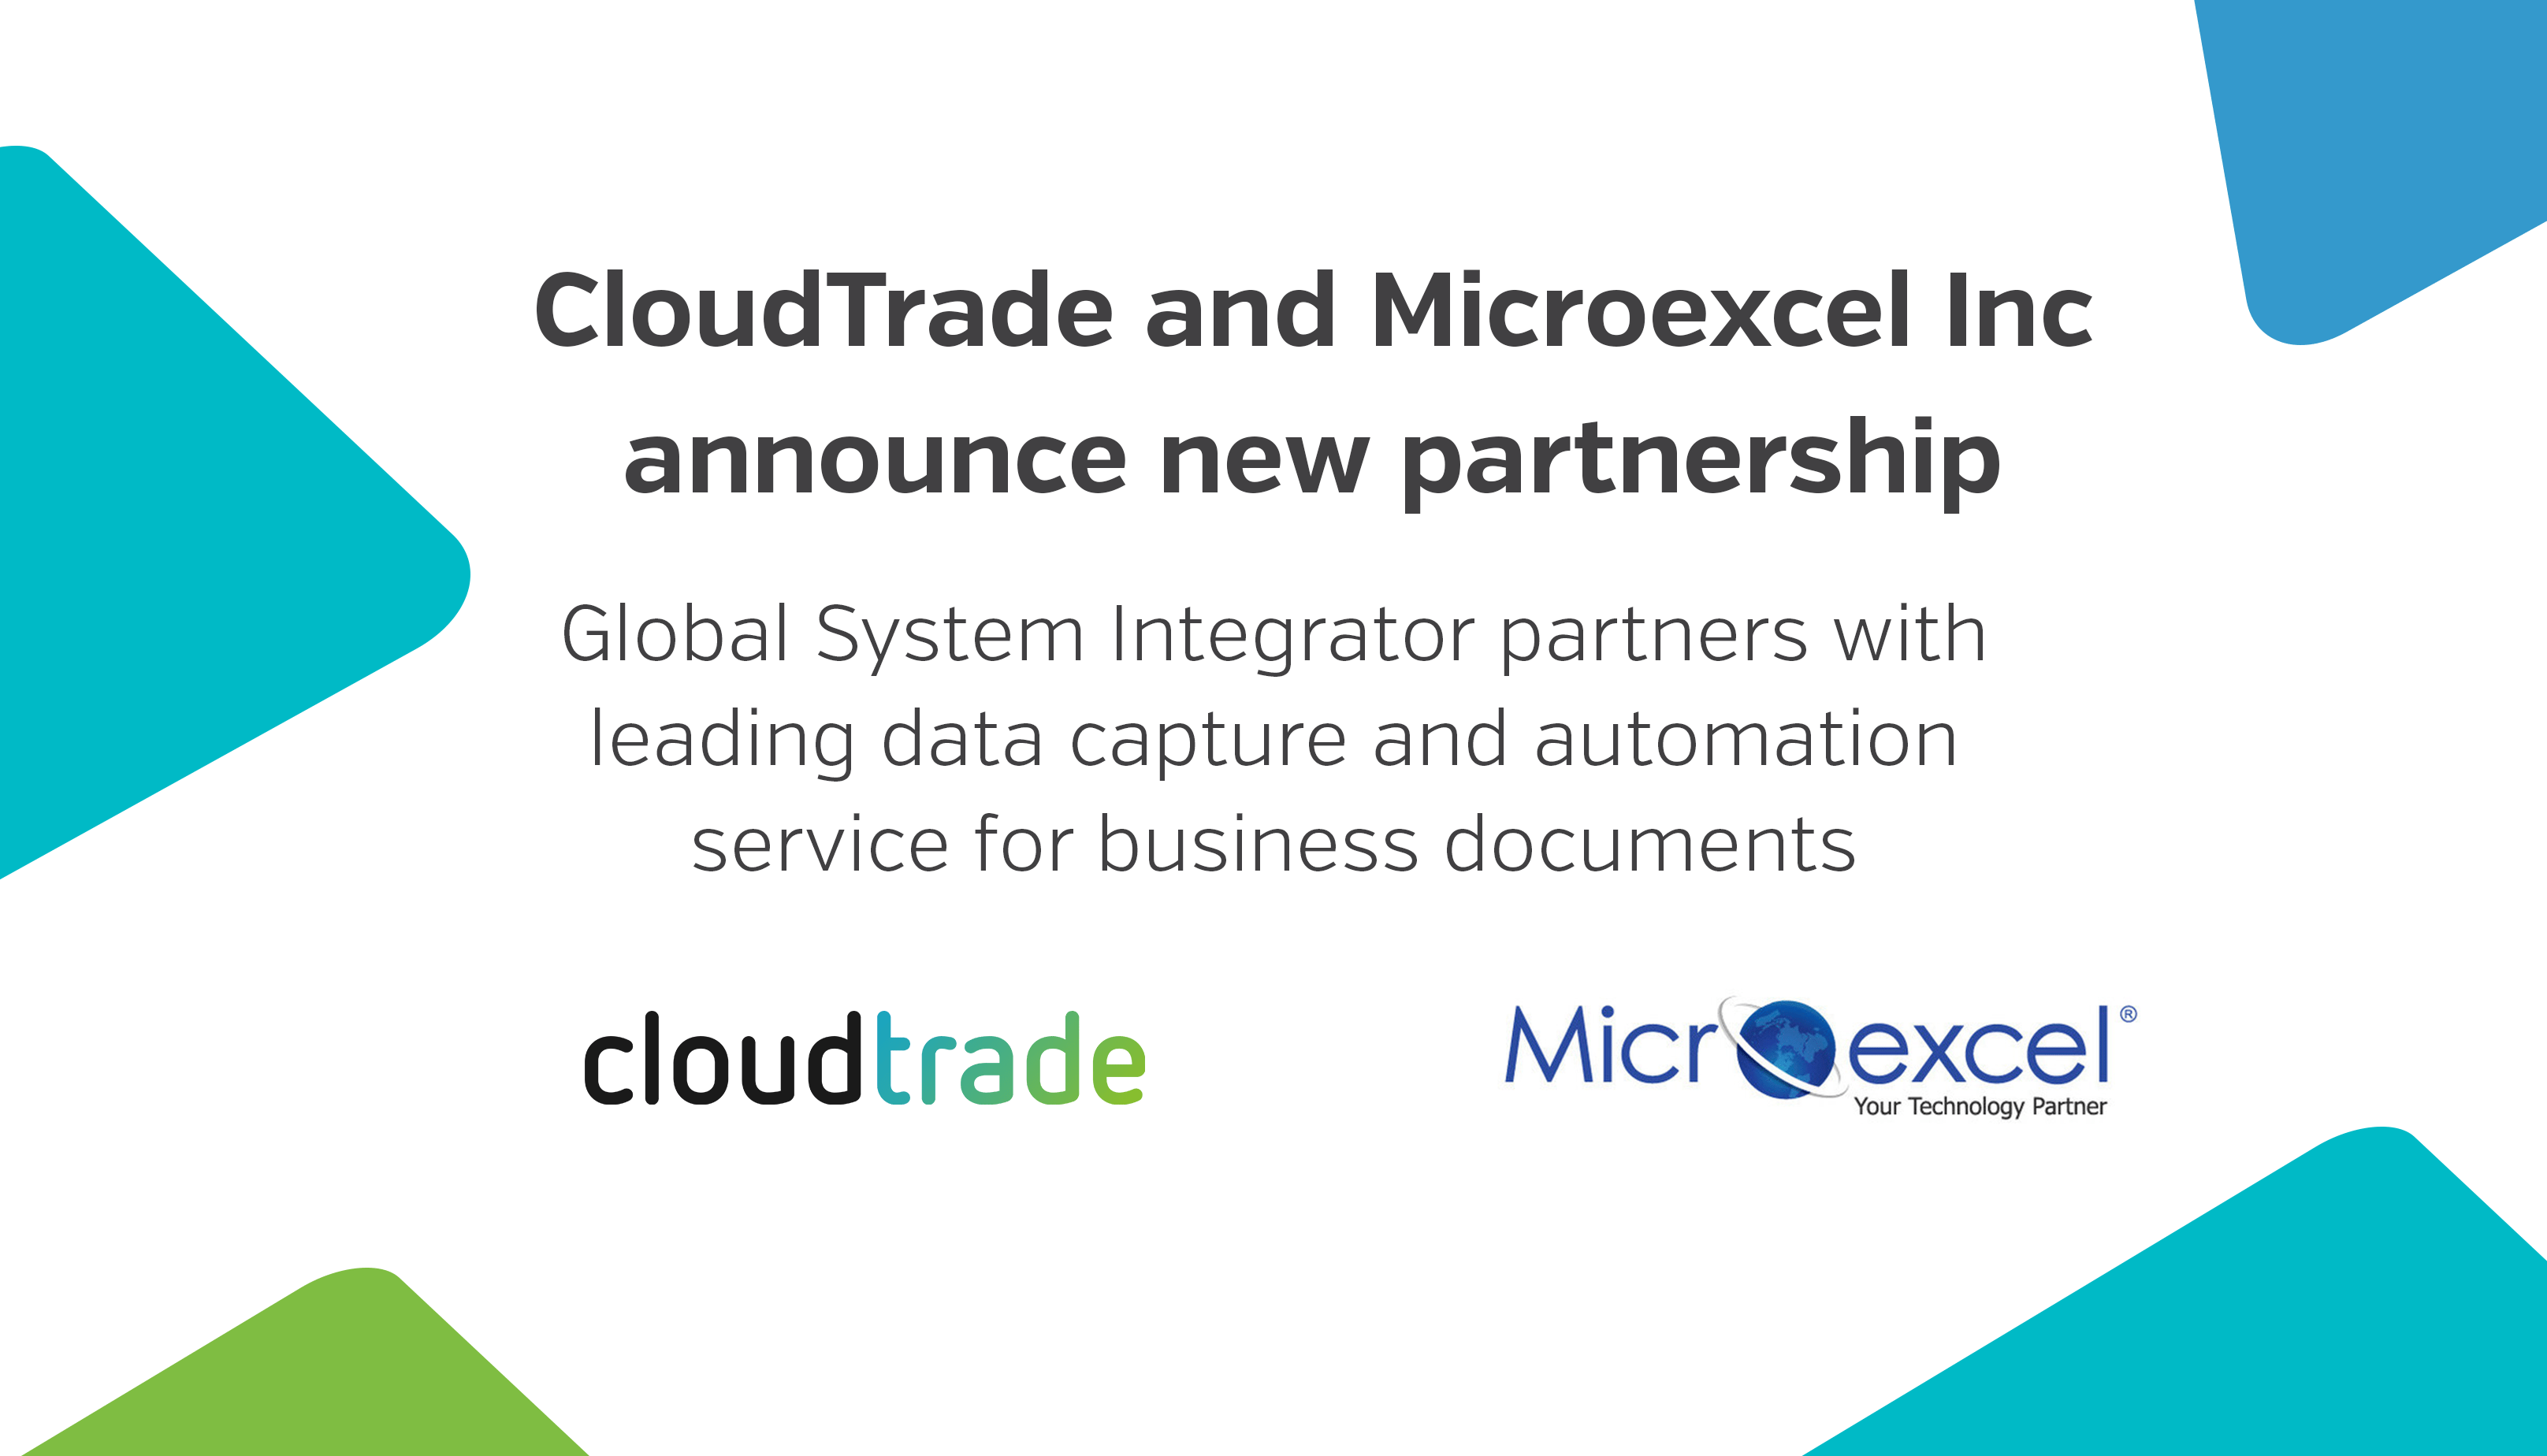 Microexcel Inc announces partnership with CloudTrade